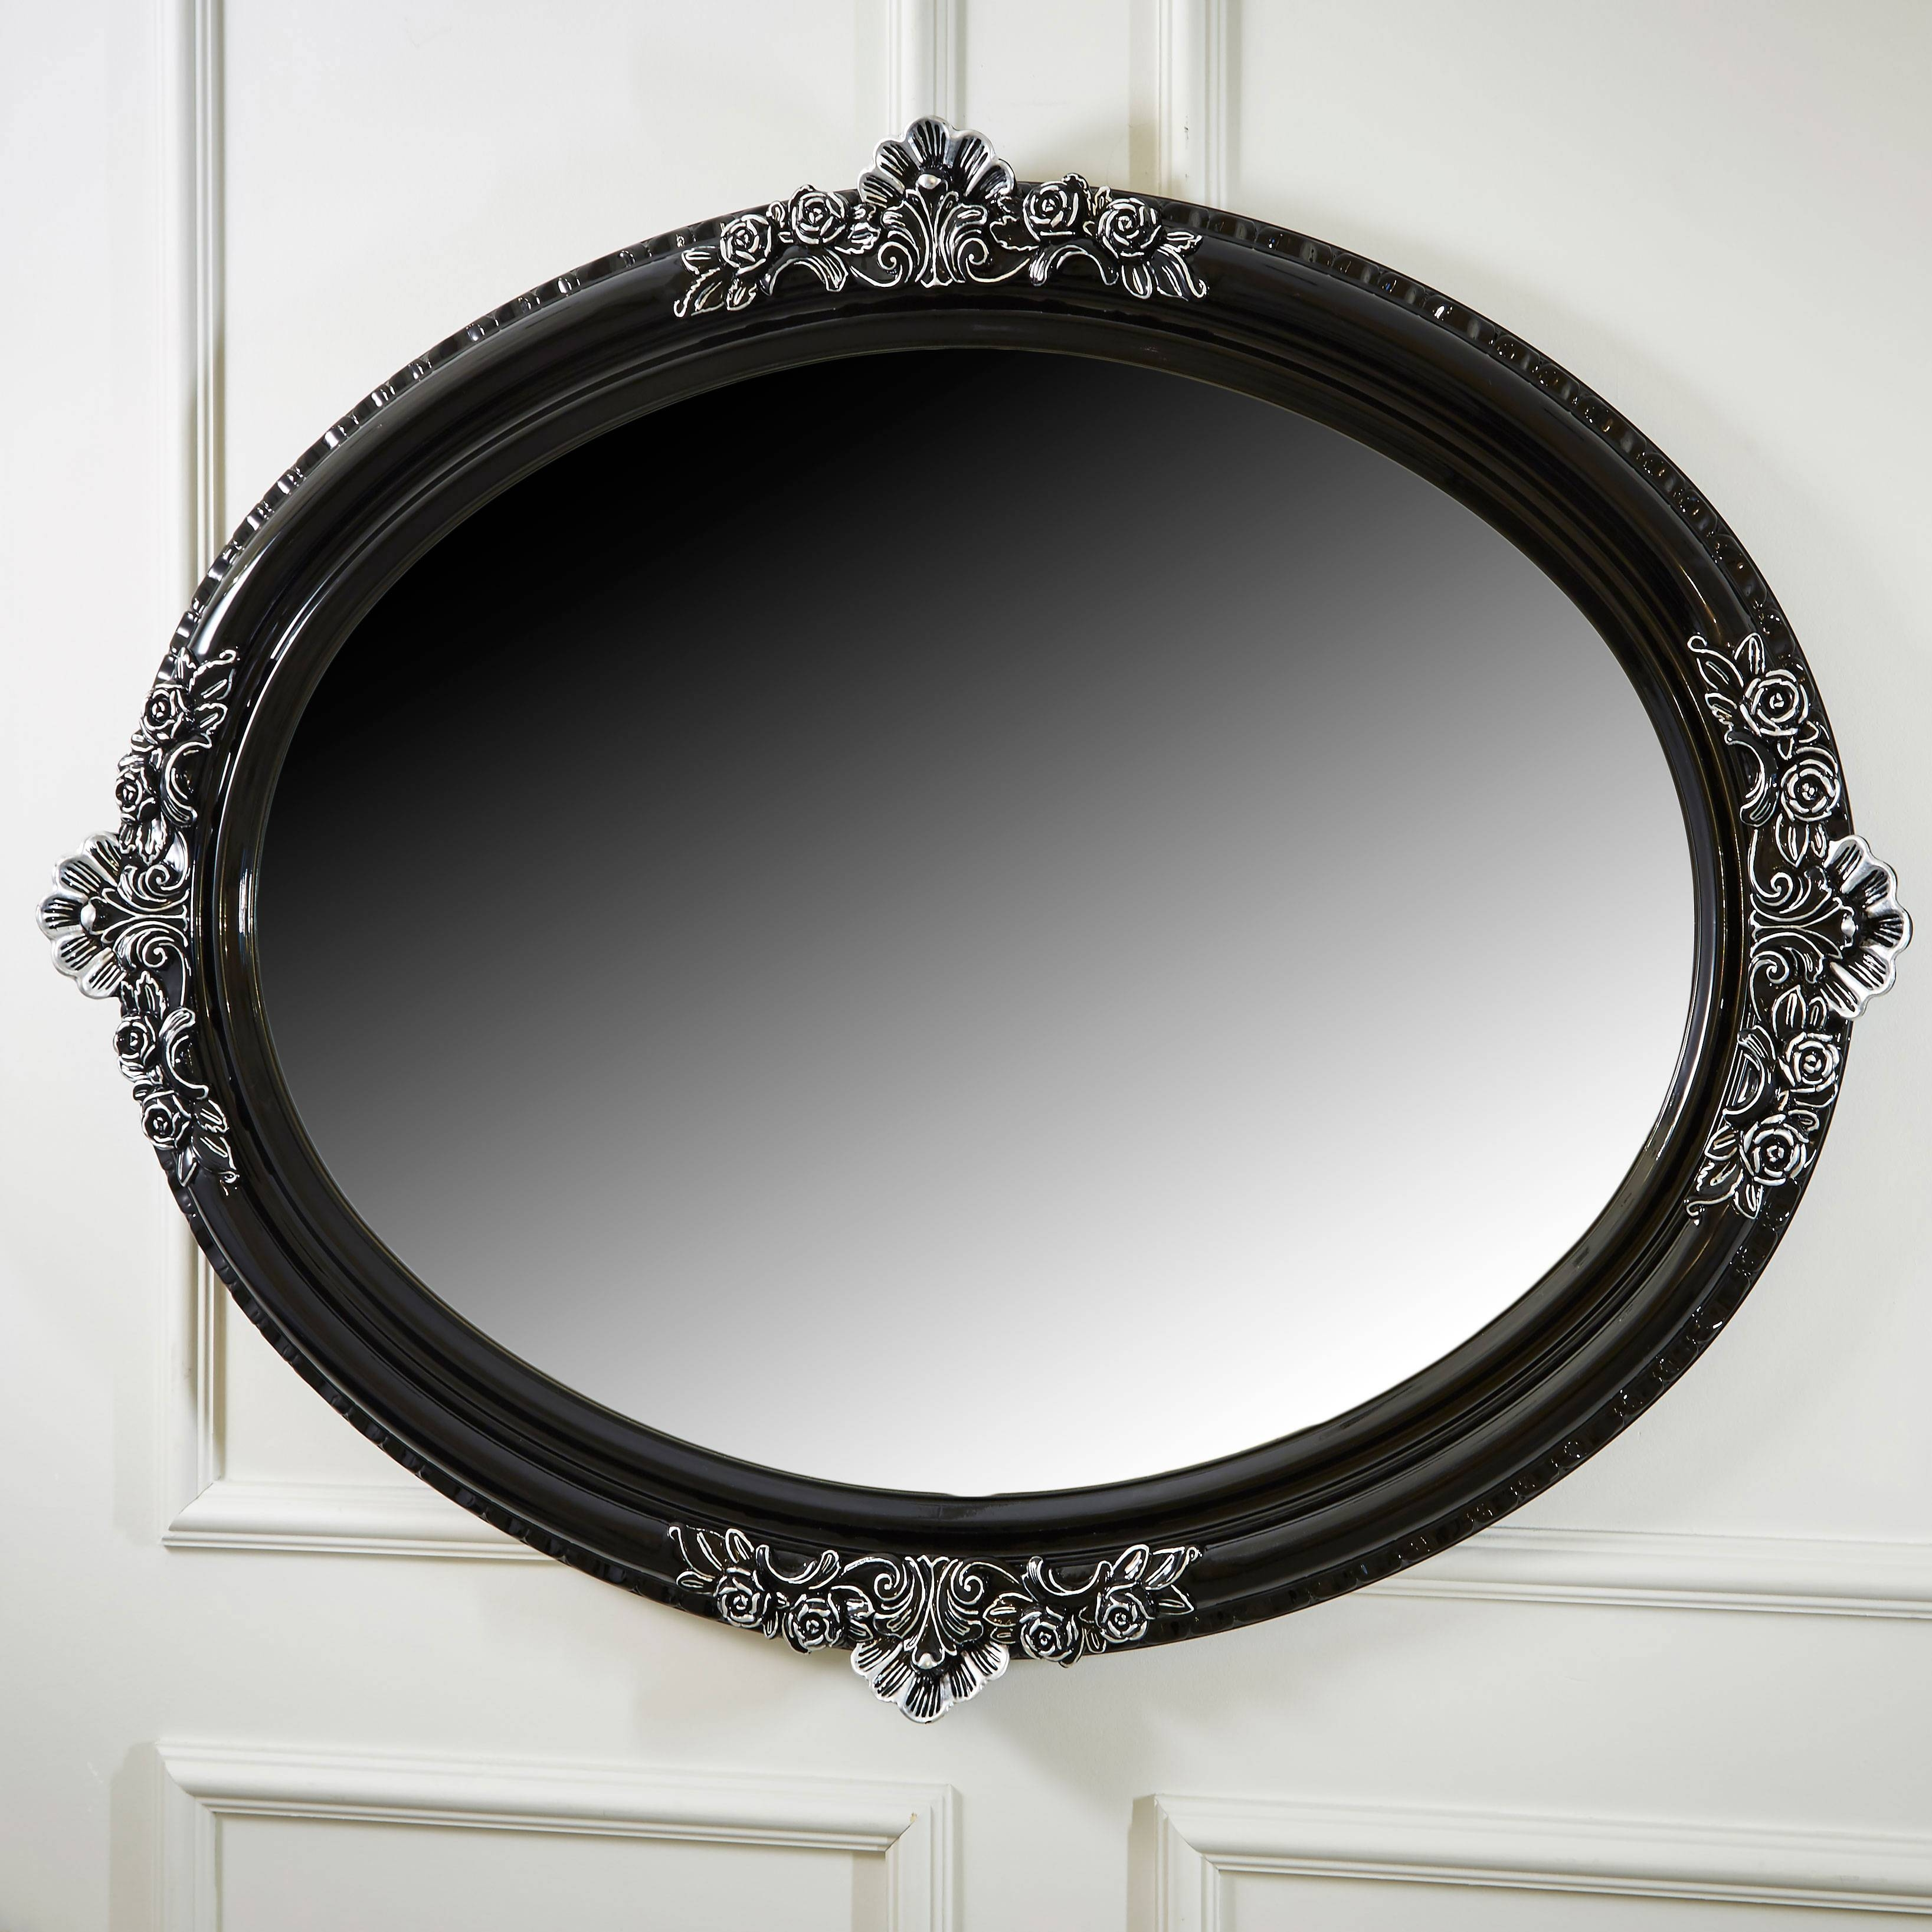 Ornate High Gloss Black Oval Mirror | Juliettes Interiors intended for Ornate Oval Mirrors (Image 14 of 25)